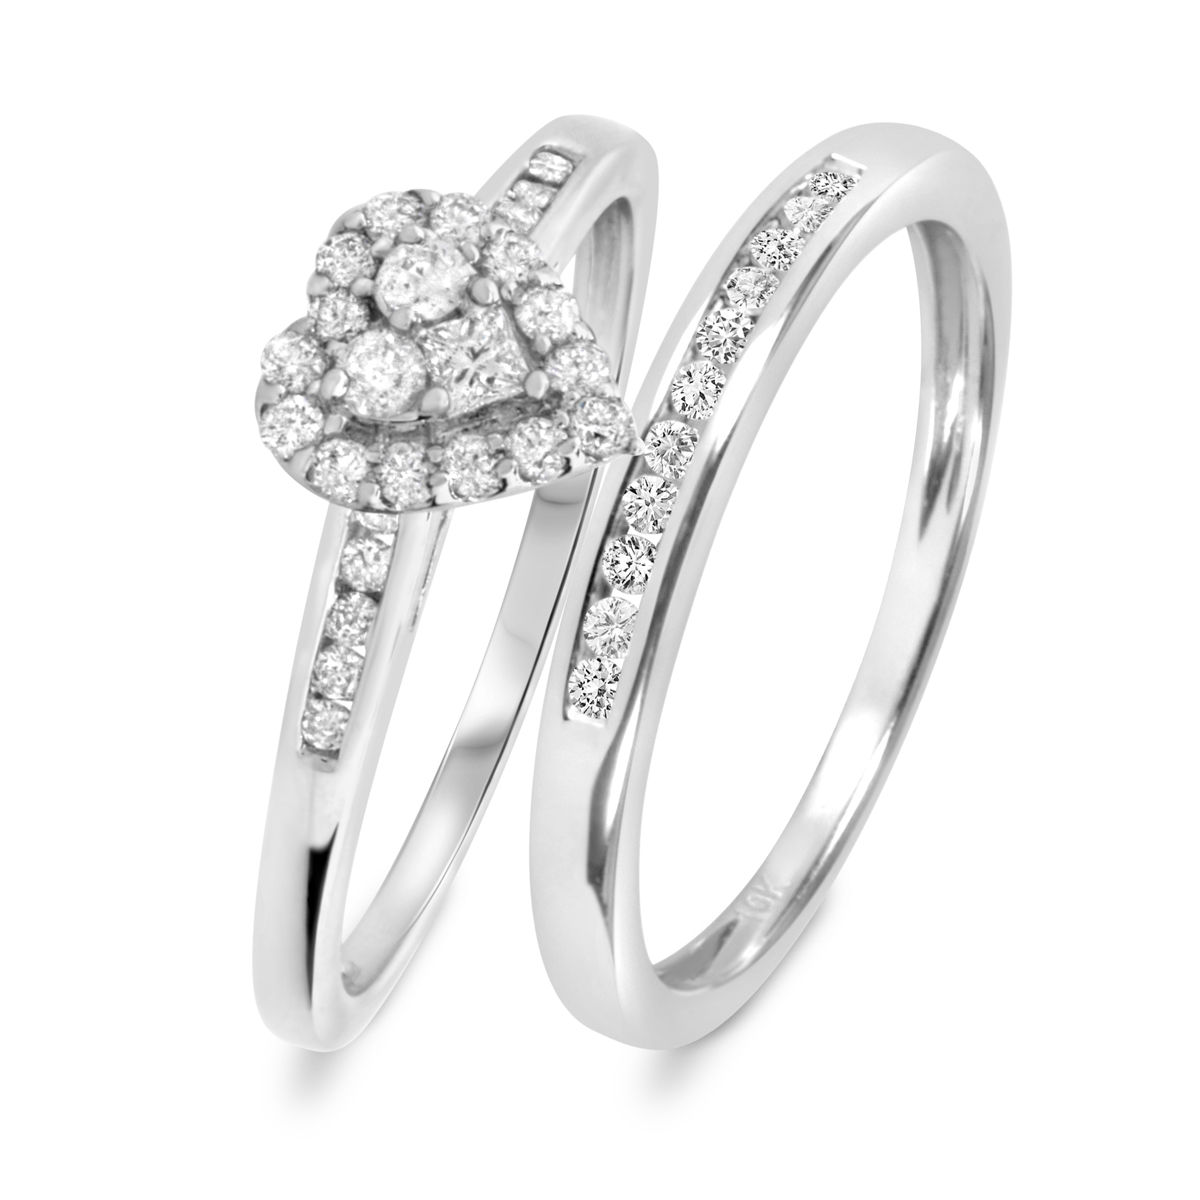 1 2 carat tw diamond ladies39 bridal wedding ring set 10k for Ladies diamond wedding ring sets